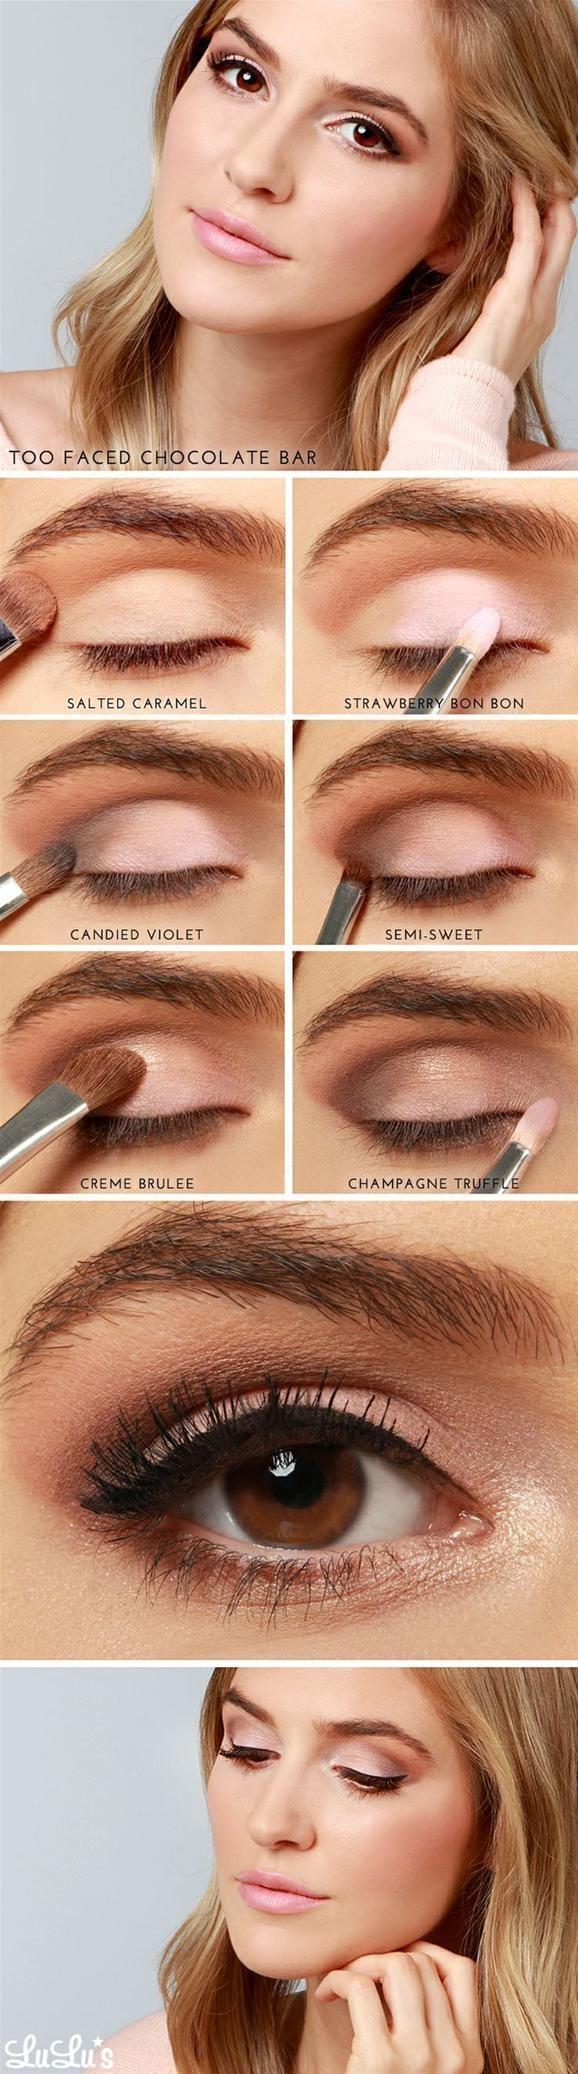 Best Ideas For Makeup Tutorials : 17 Best Light Smoky Eye Makeup Tutorials for Summer: #10. Fresh Champagne Smoky …